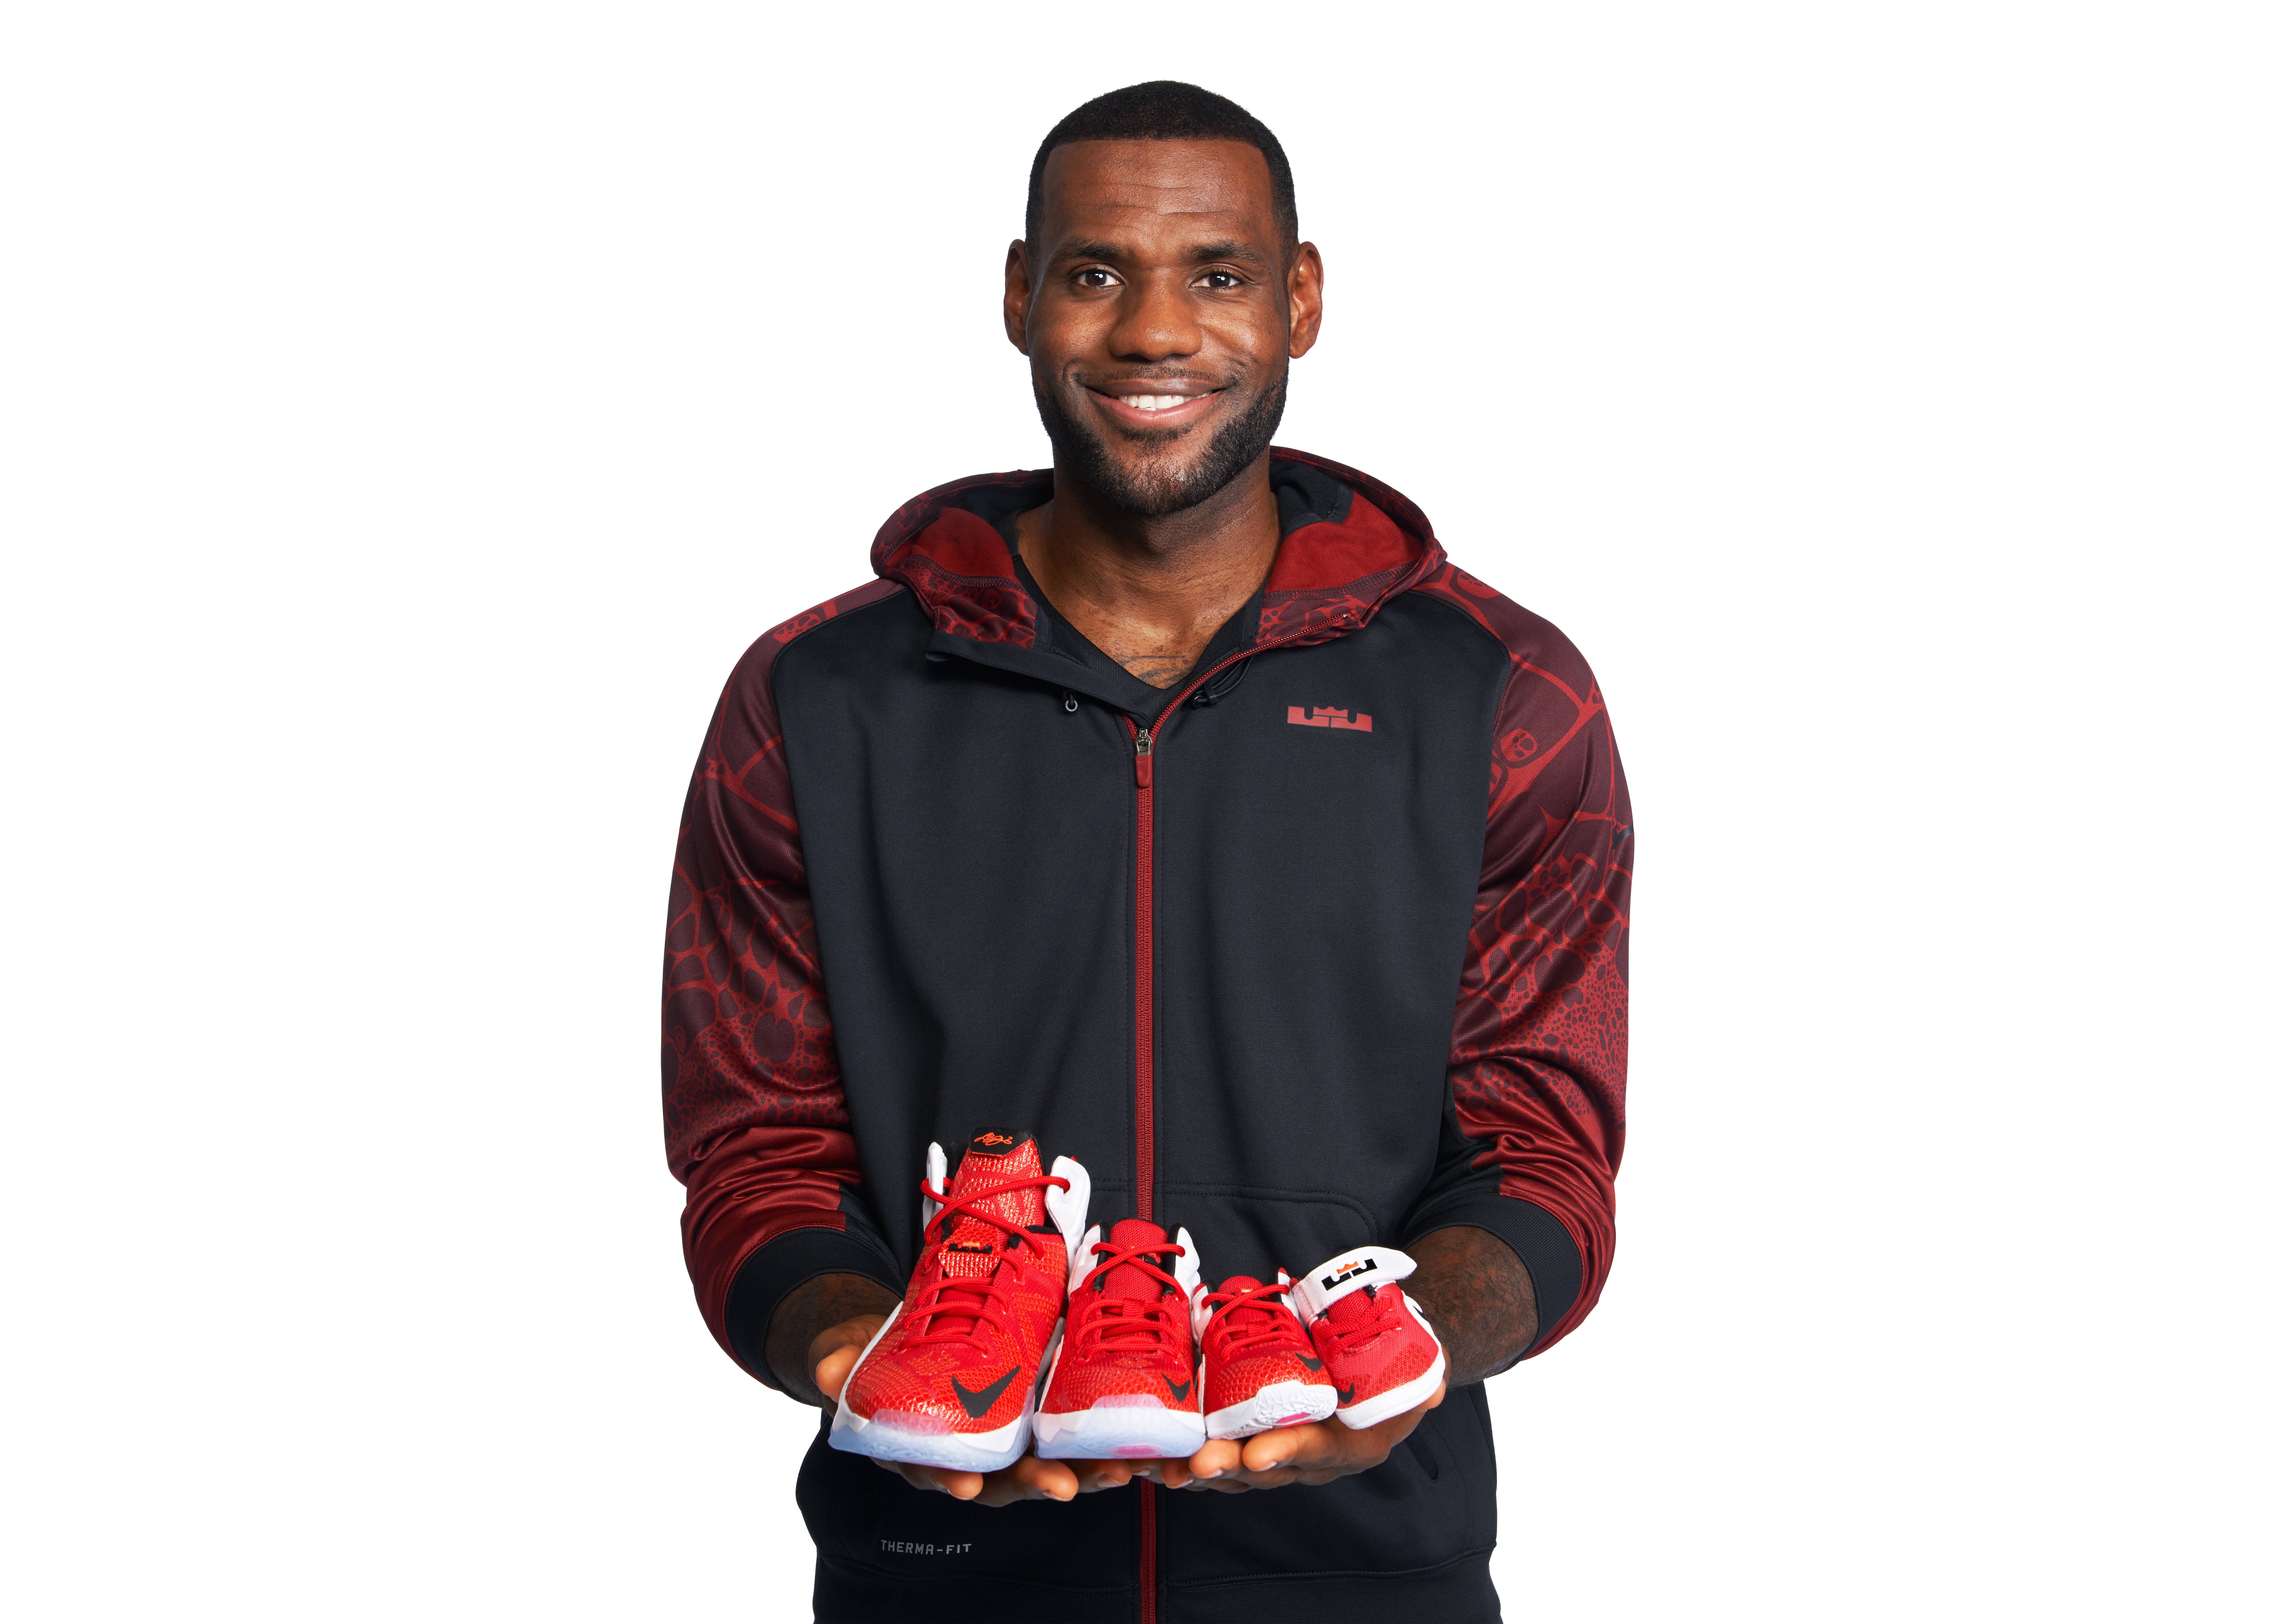 Nike News - Fit for a Prince: The Nike LEBRON 12 for Young Athletes